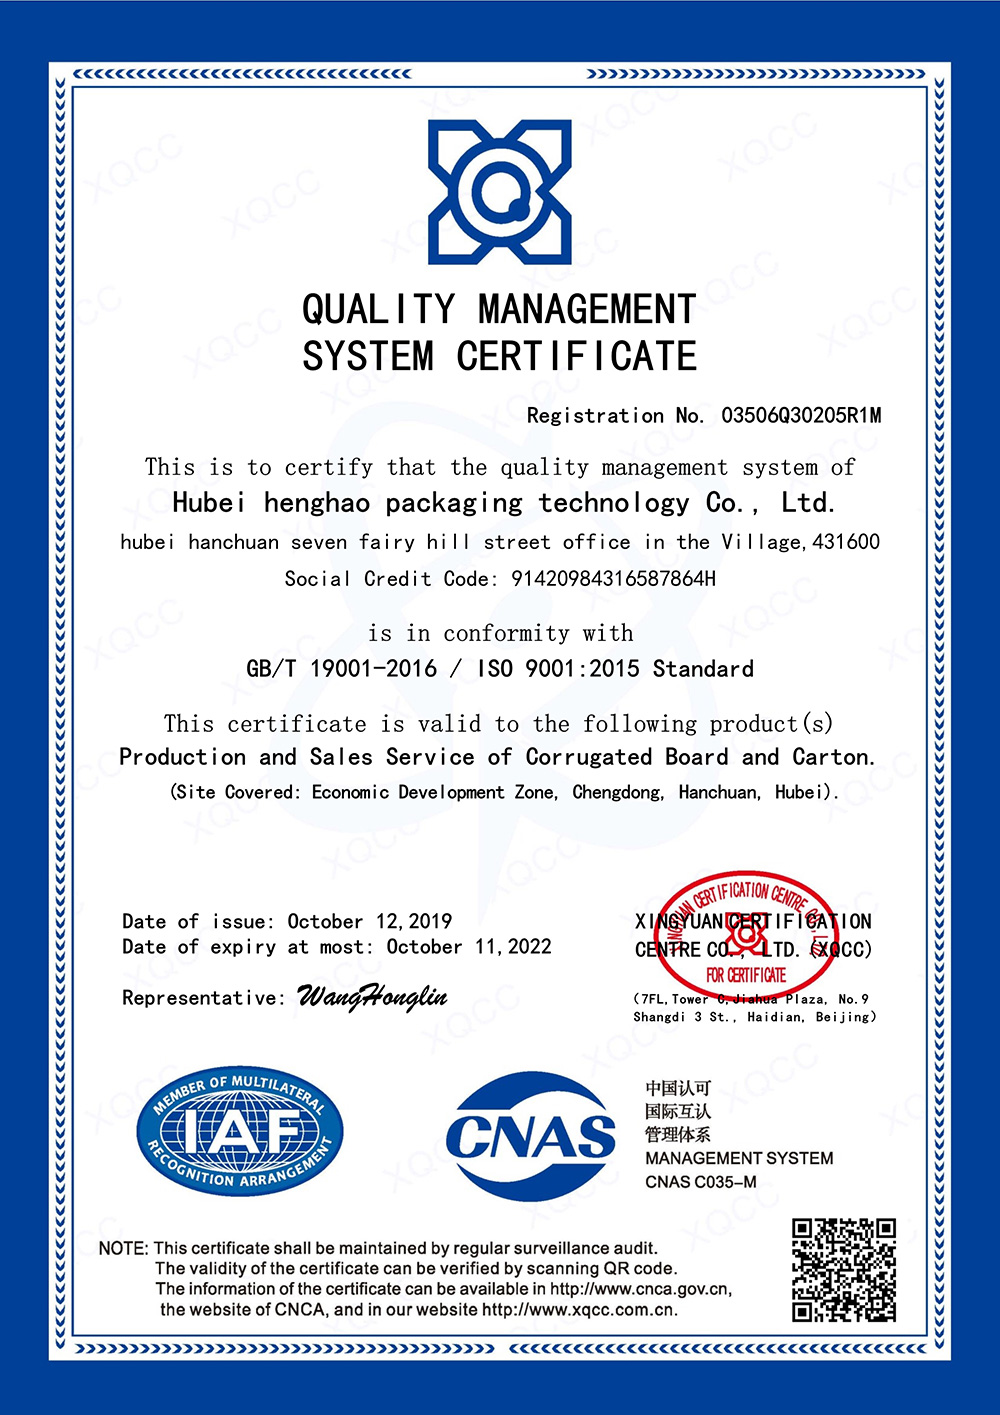 QUALITY MANAGEMENT SYSTEM CERTIFACATE